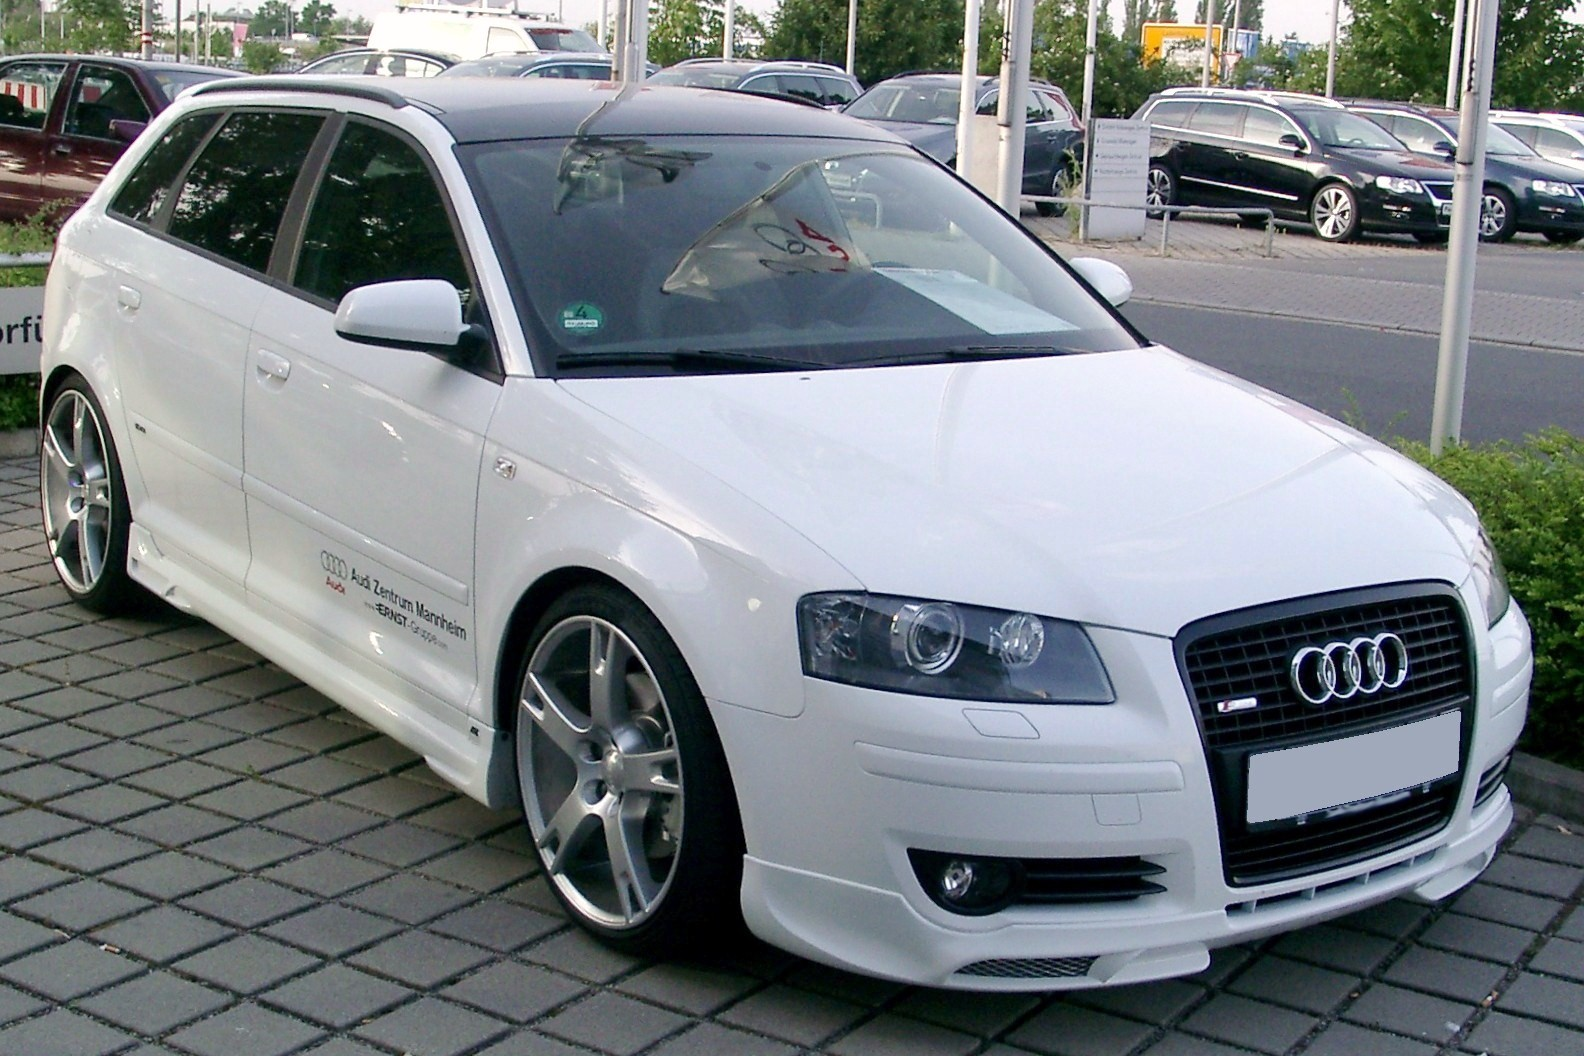 Audi A3 2011 White 2011 Audi A3 Sportback Front | New Cars Review For ...